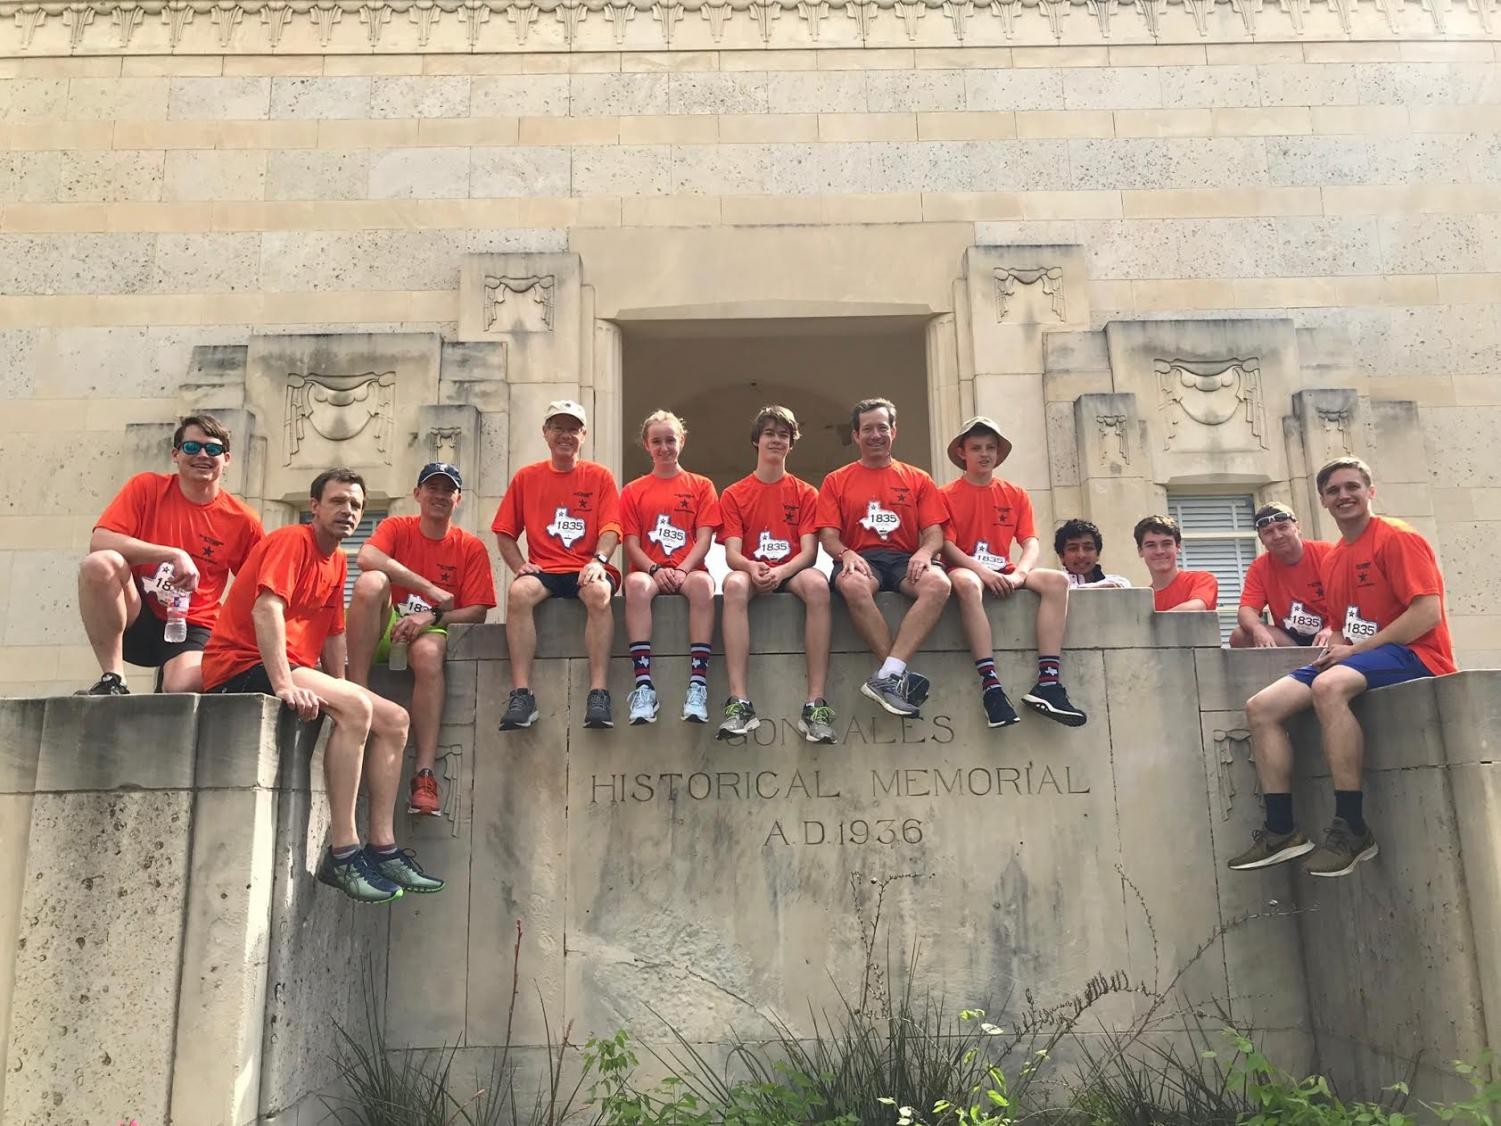 The relay team visits a monument in Gonzales, where the race began.